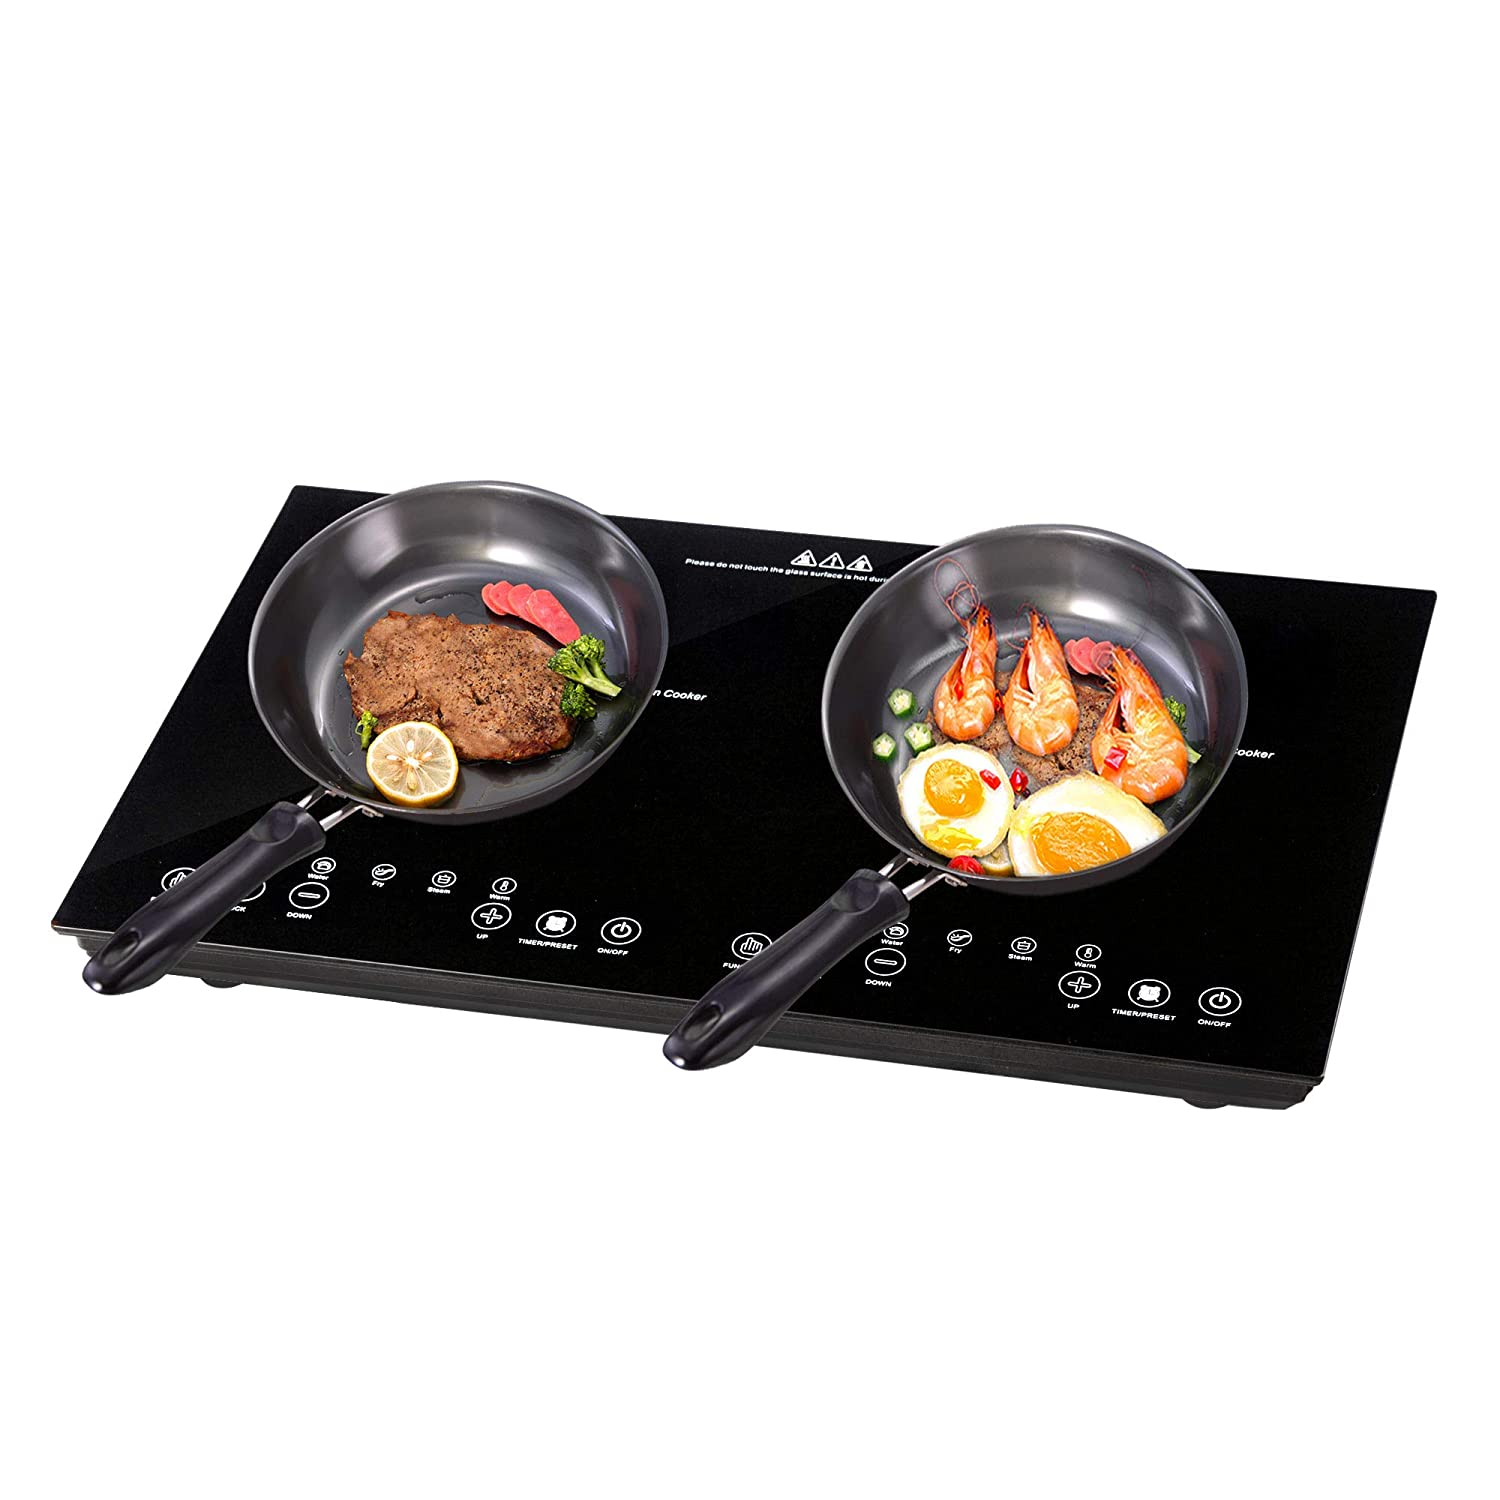 bc4bf27cb07e7 Amazon.com  Yescom 1800W Electric Dual Induction Cooker Countertop Double  Burner Cooktop Digital Touch Panel Kids Lock Portable  Kitchen   Dining